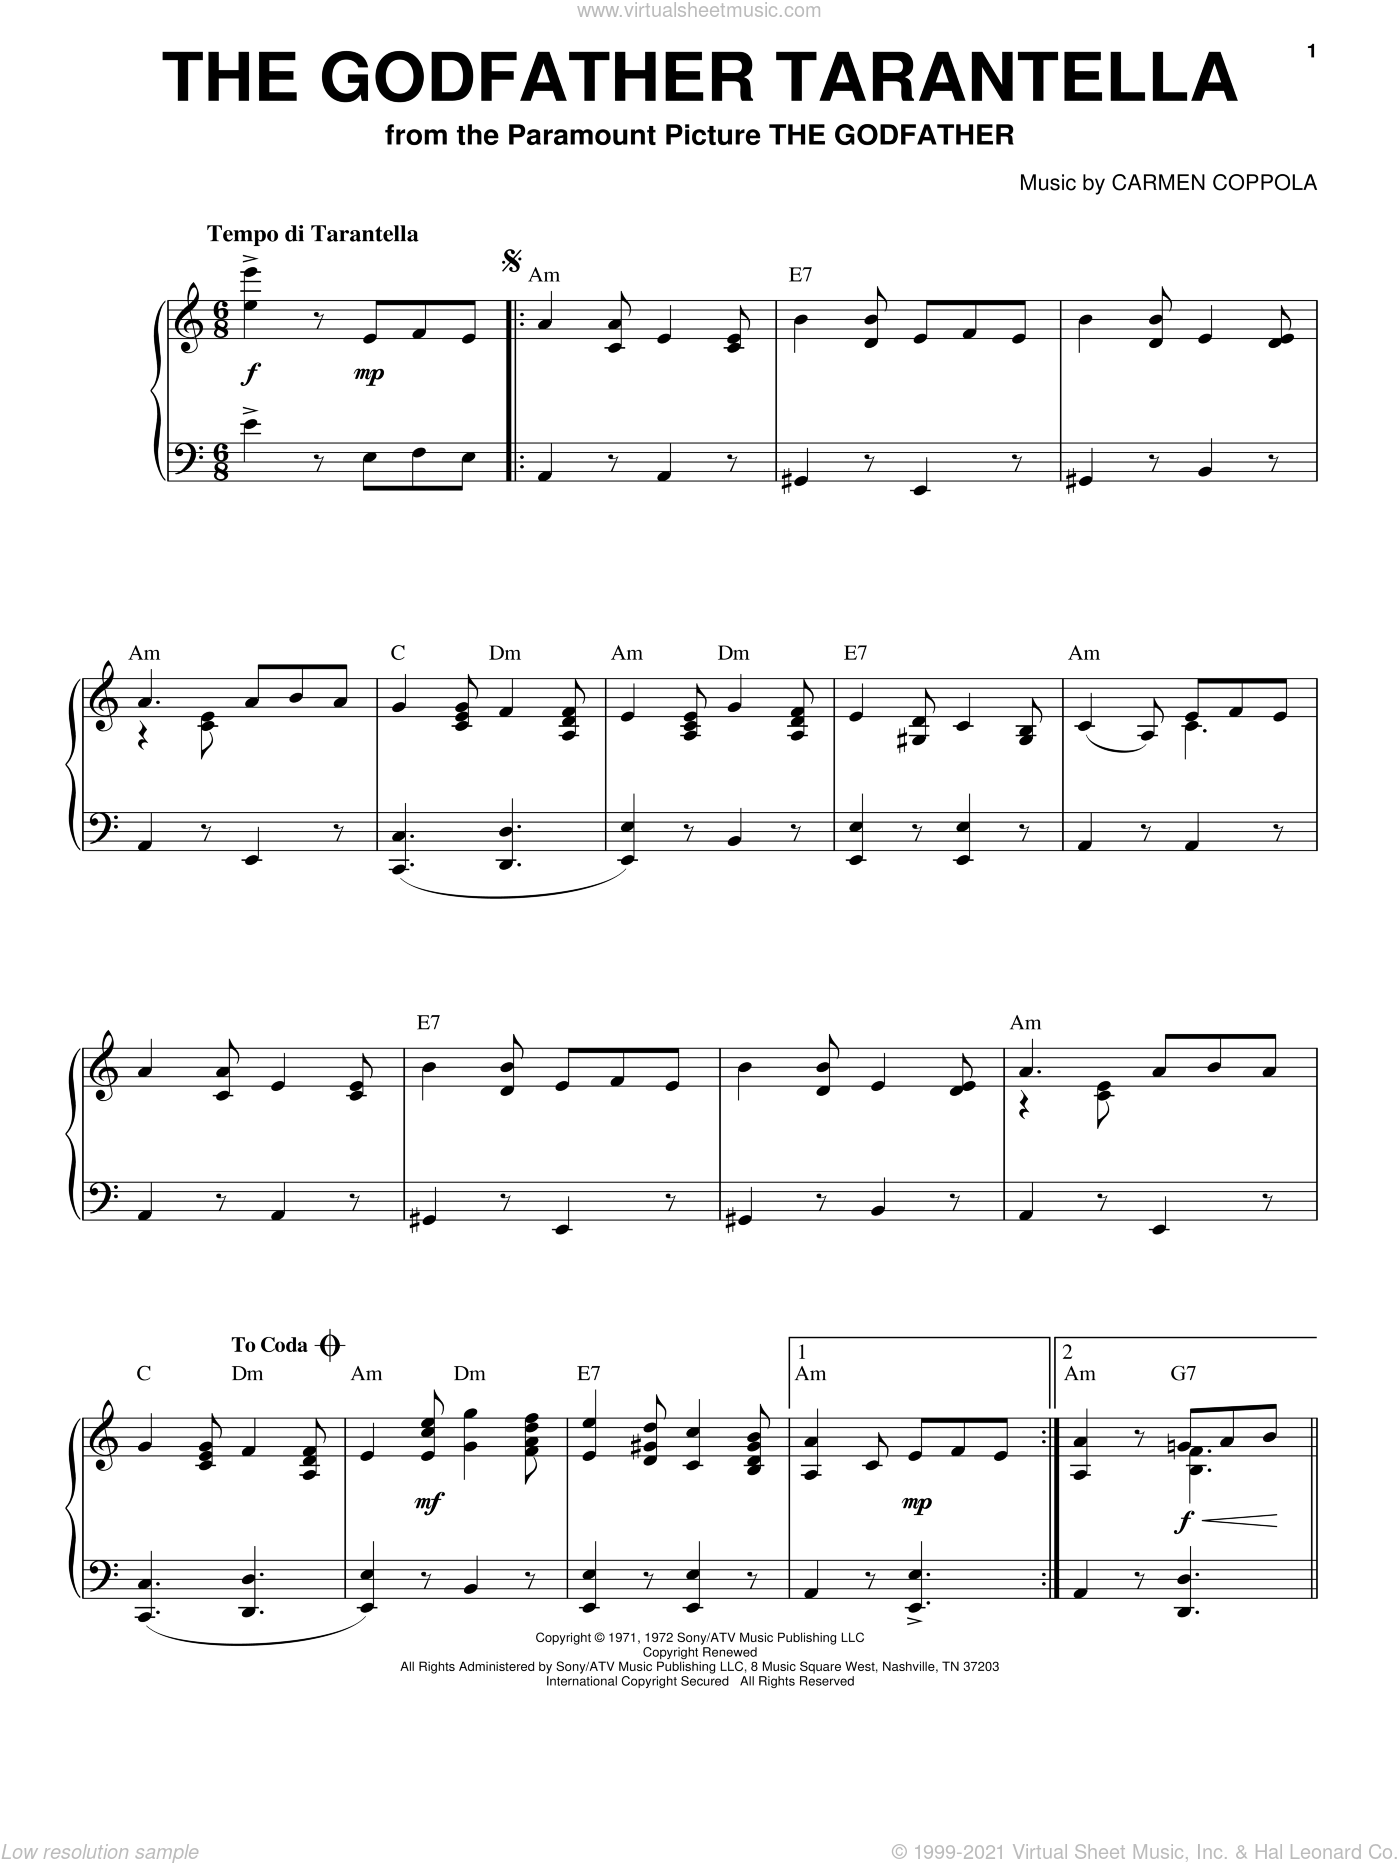 The Godfather Tarantella sheet music for voice, piano or guitar by Carmen Coppola